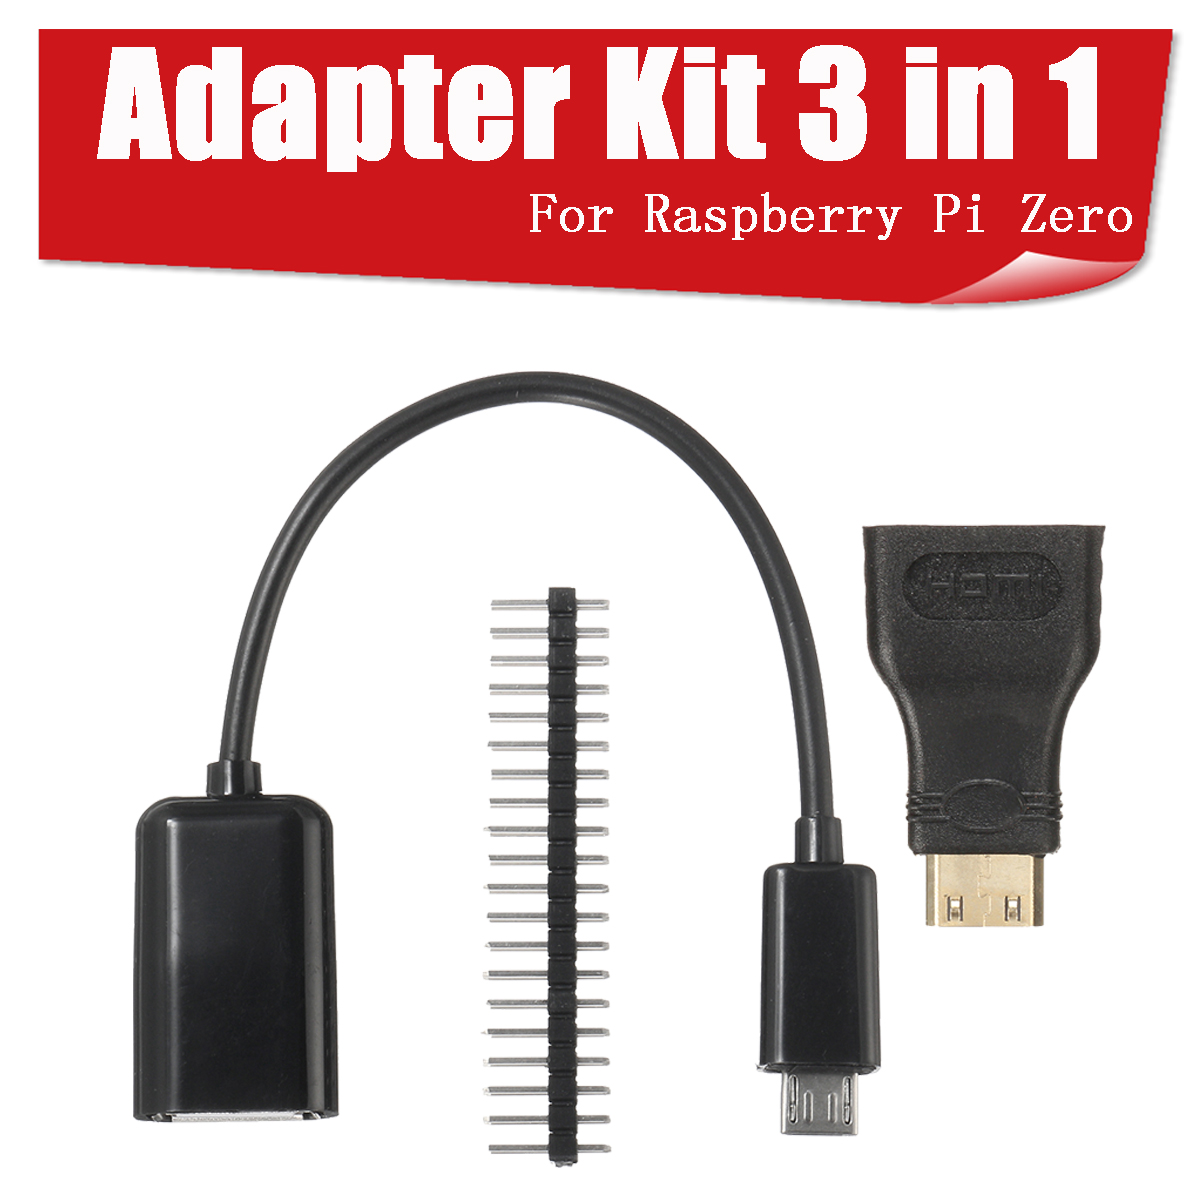 3 in 1 Mini HD to HD Adapter+Micro USB to USB Female Power Cable+40P Pin Kits For Raspberry Pi Zero